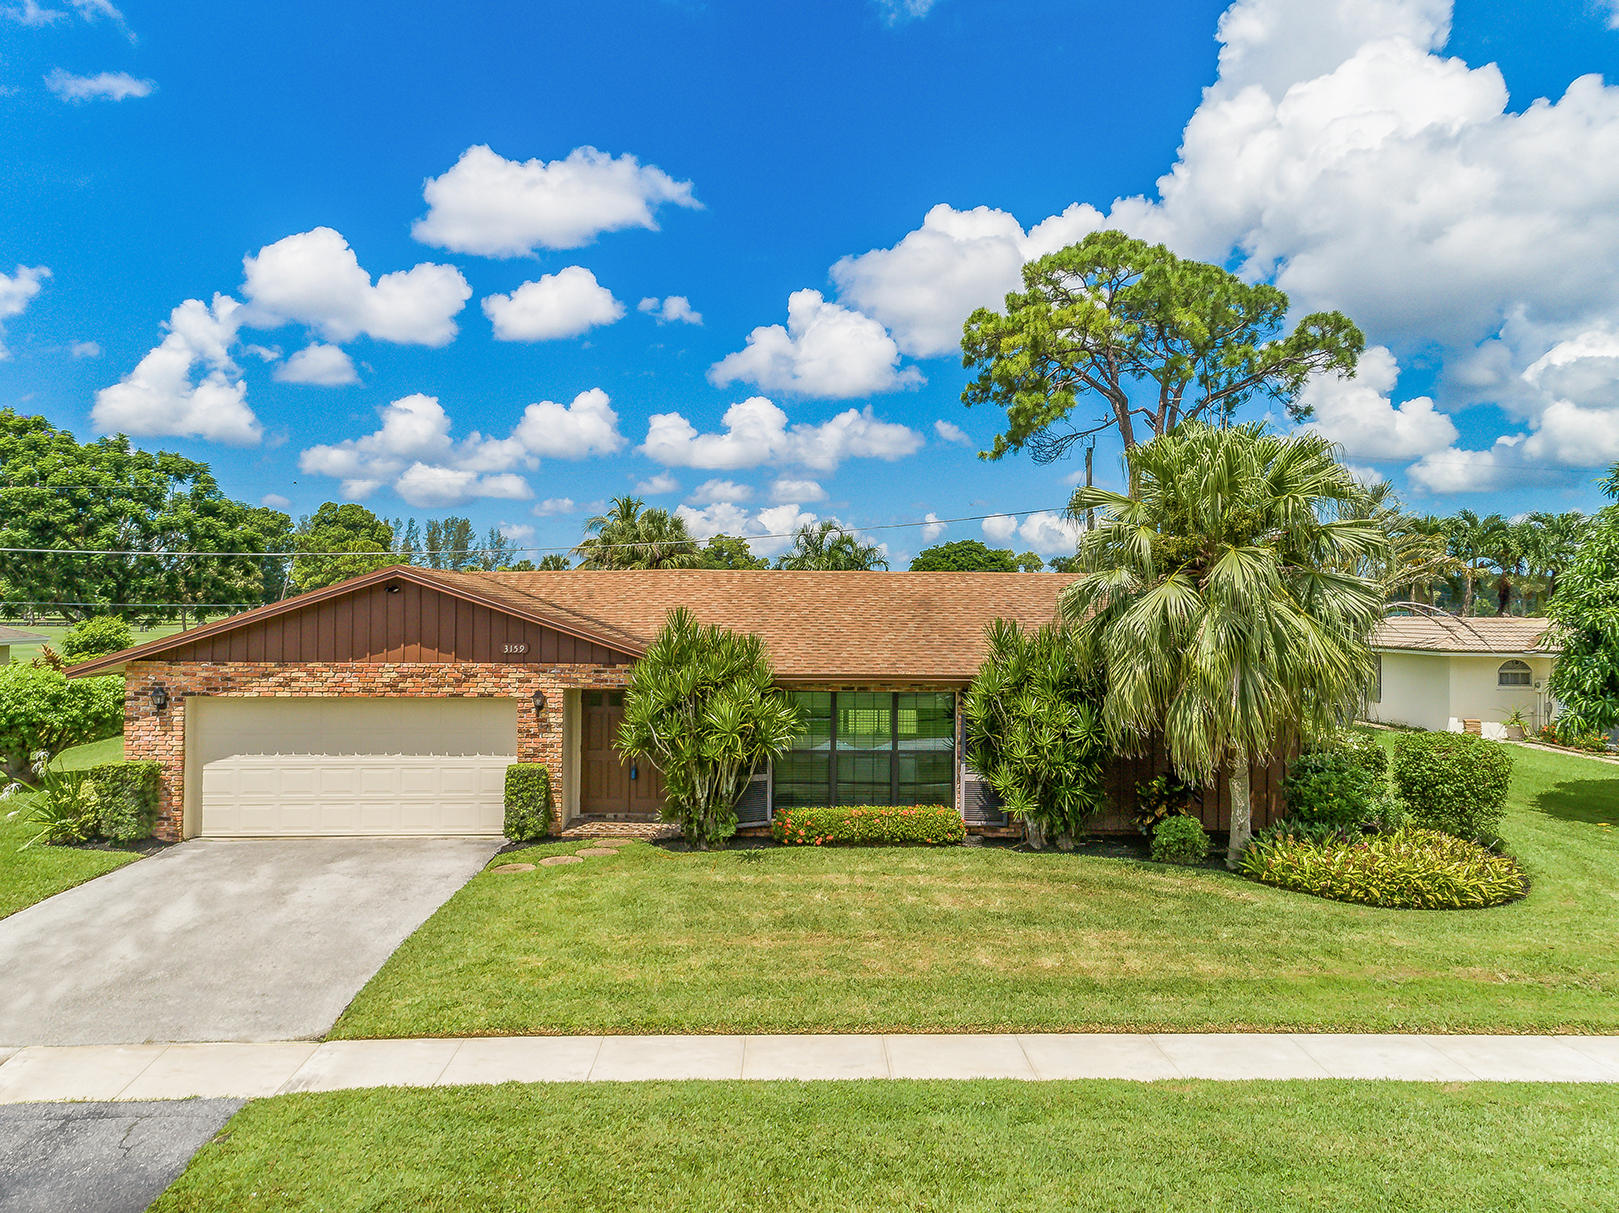 Home for sale in Palm Beach National Lake Worth Florida